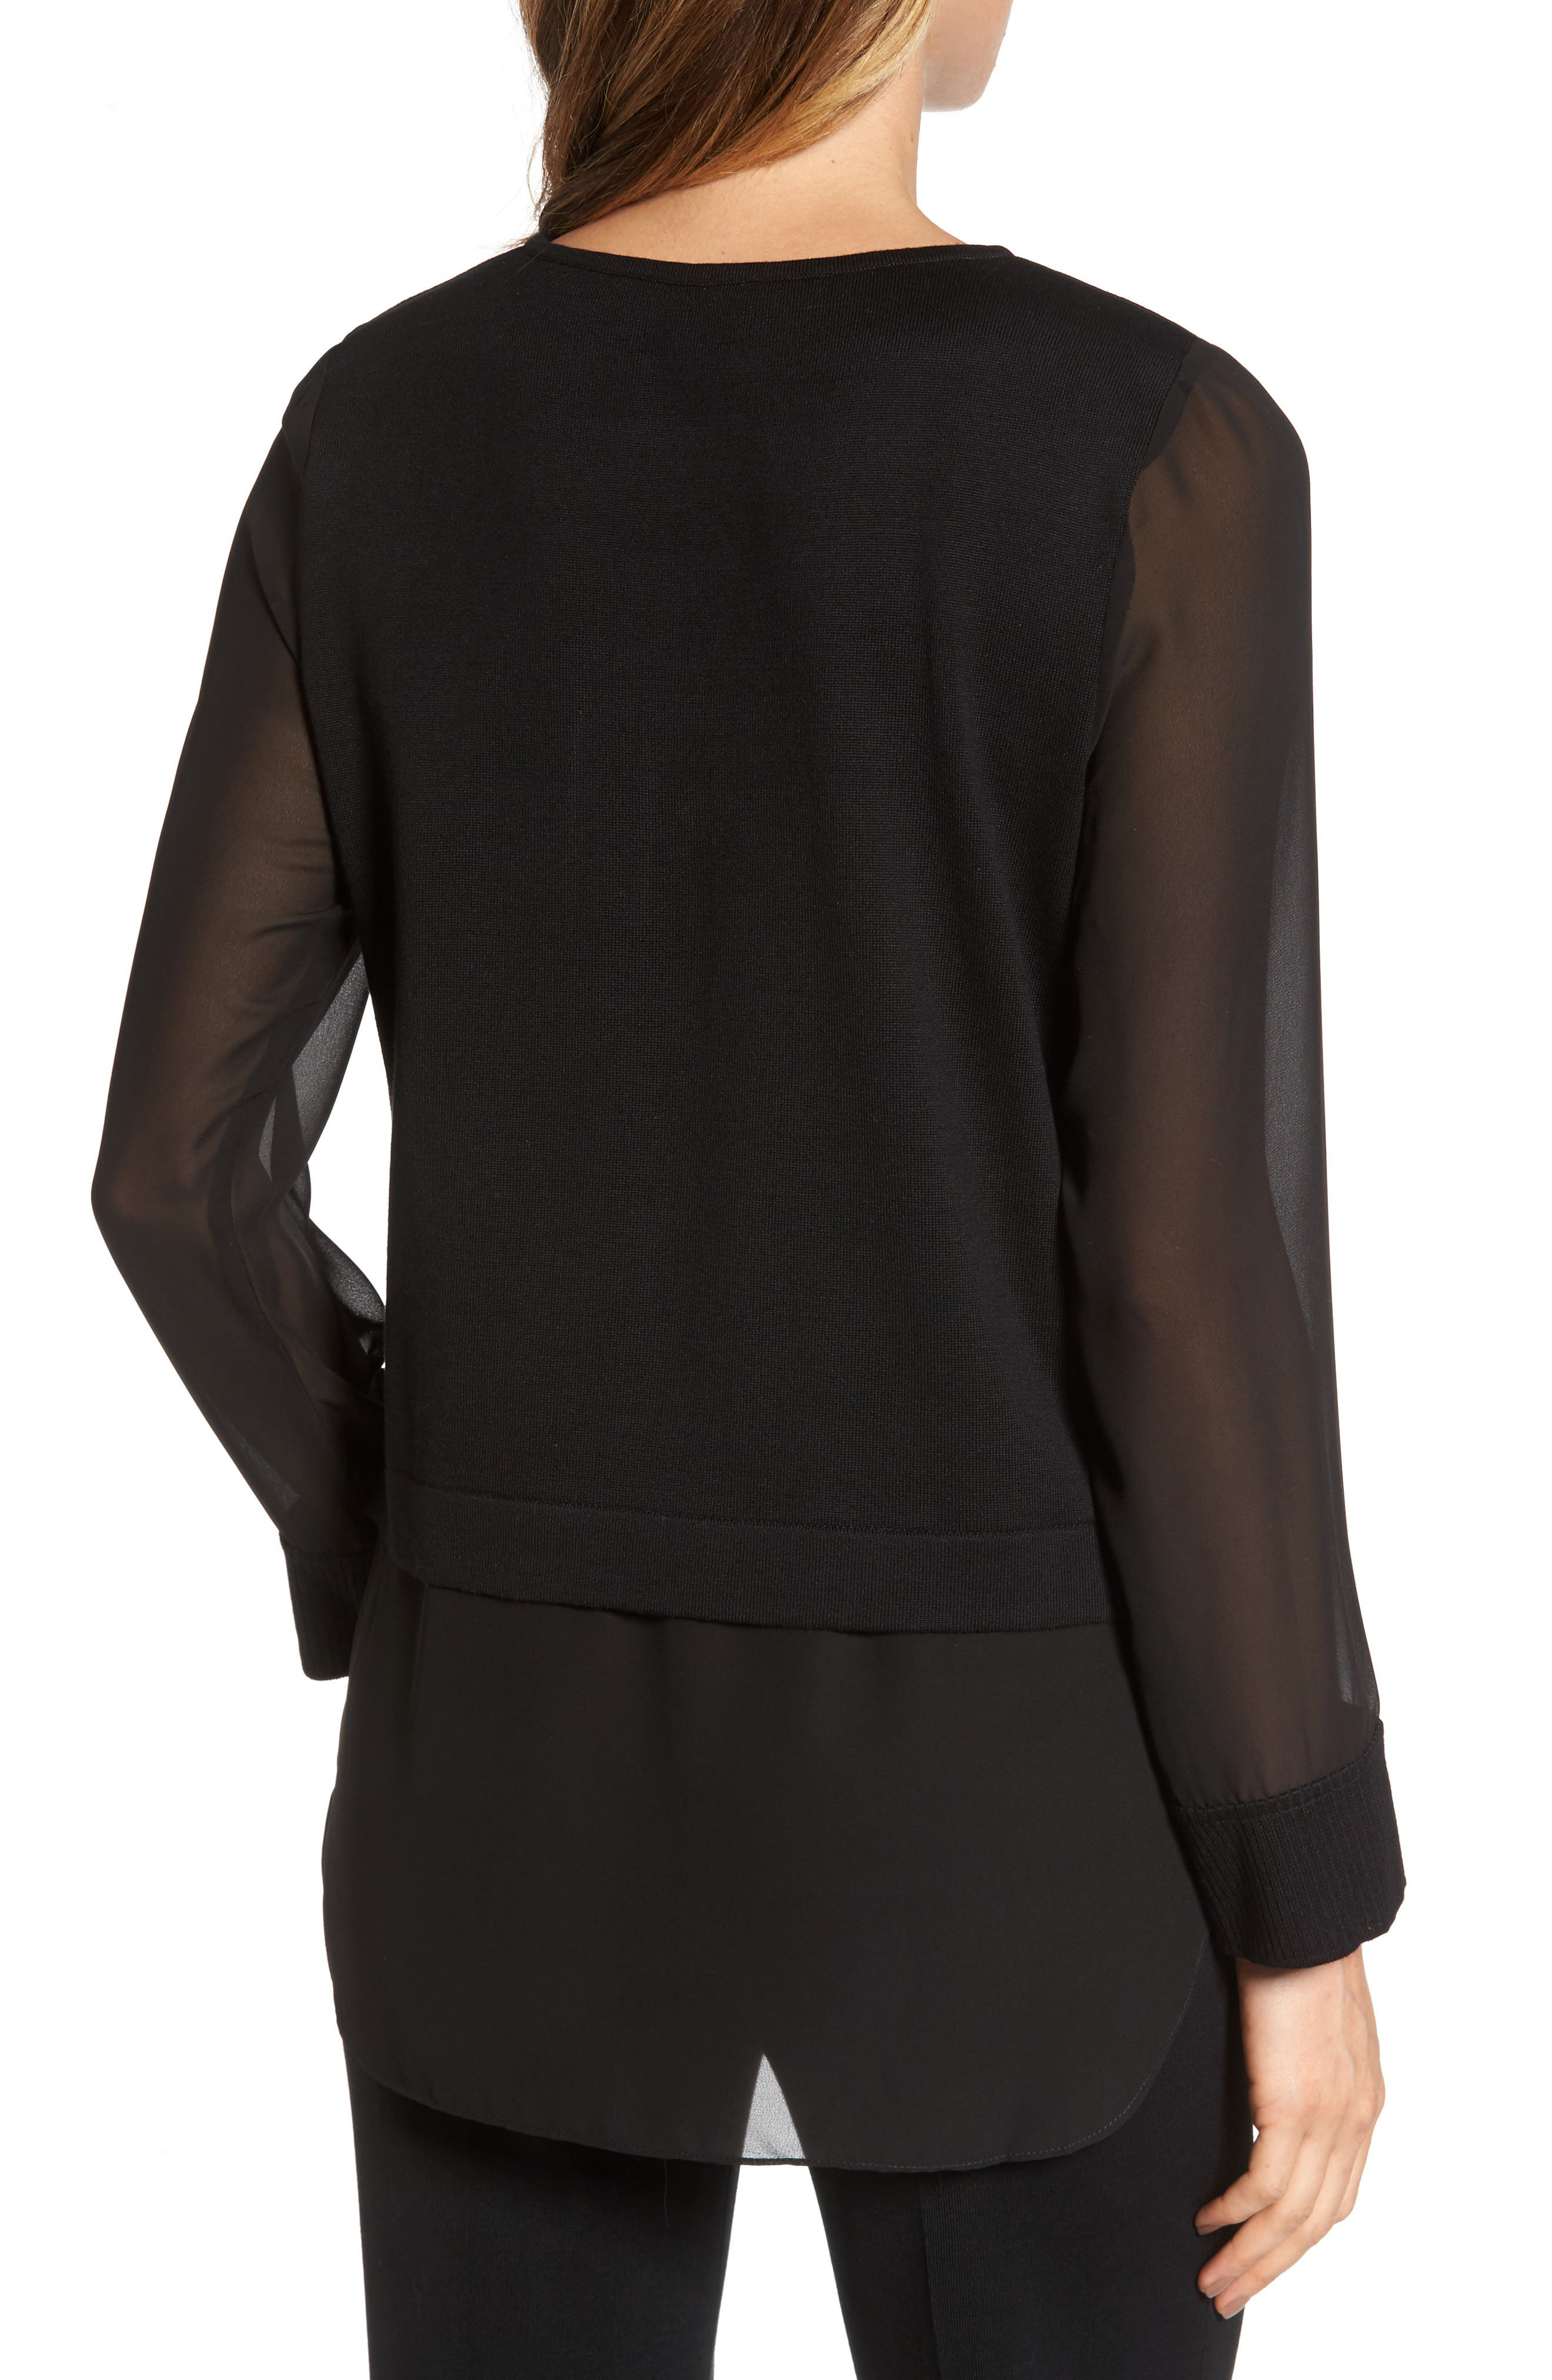 Layered Look Tunic,                             Alternate thumbnail 2, color,                             Black/ Orchid/ Ivory